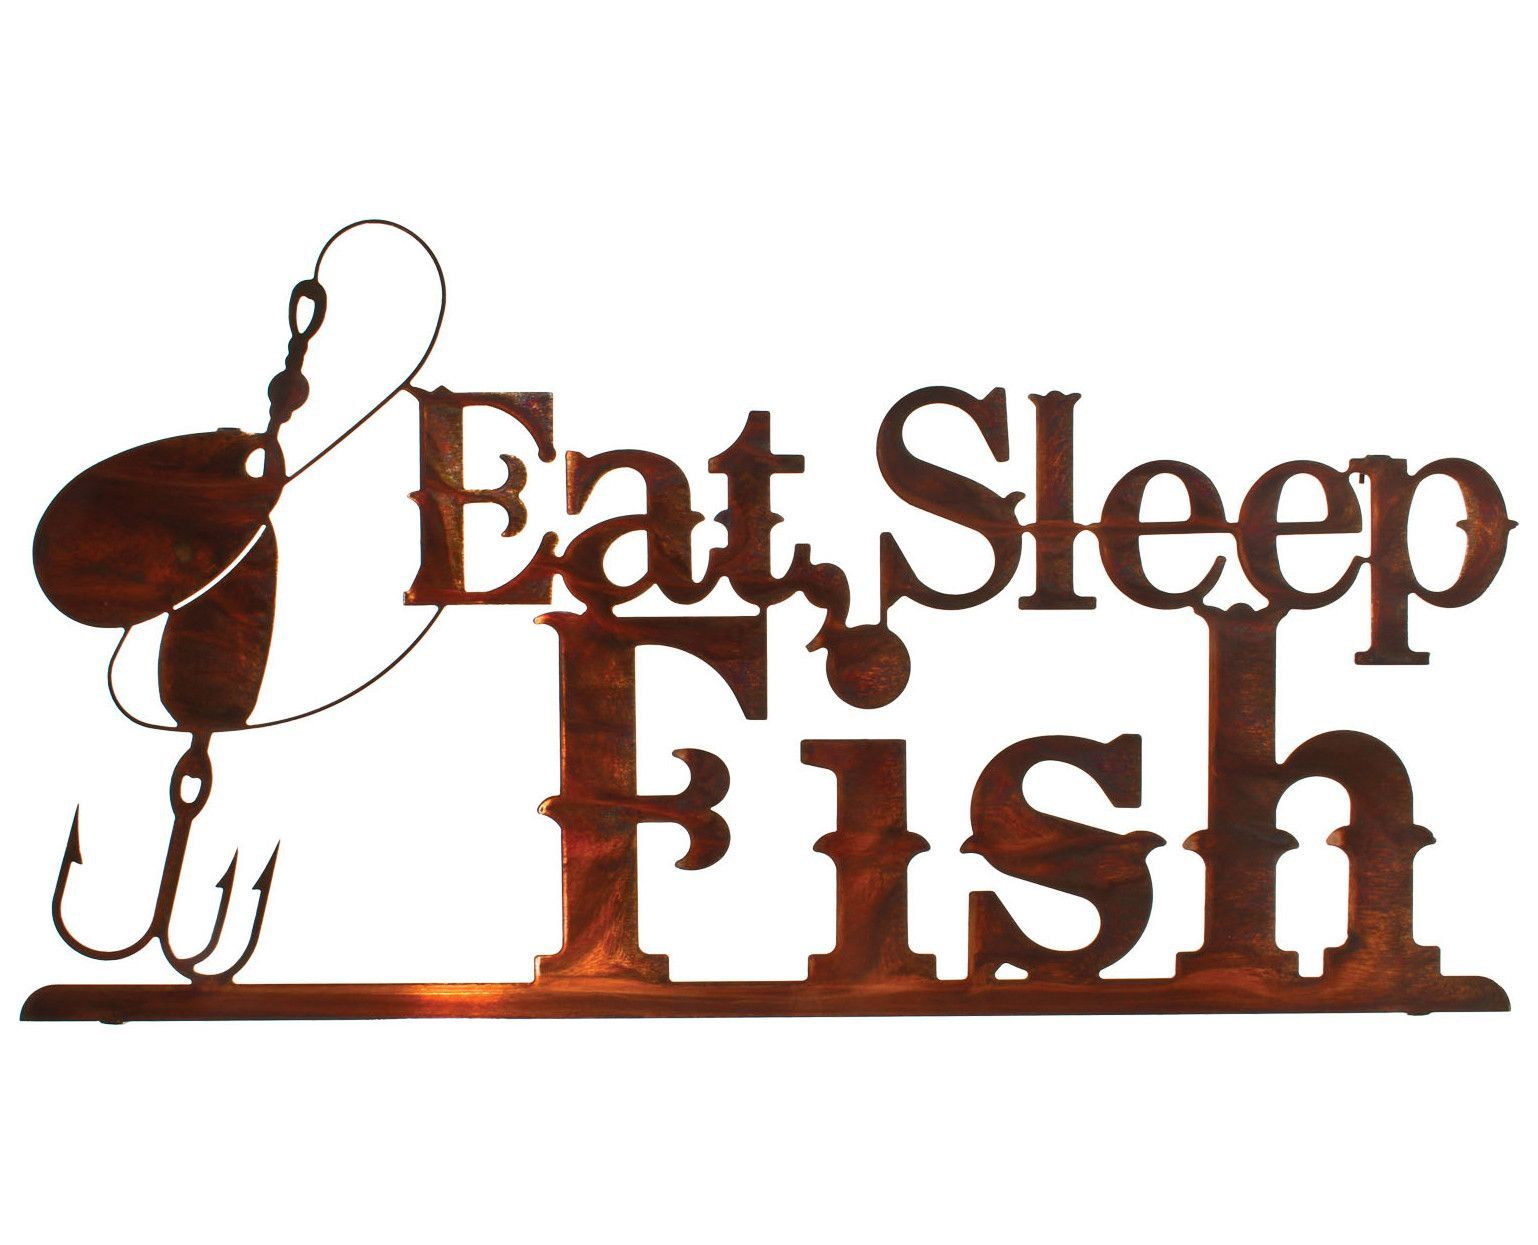 Fishermanus advice metal wall art sculpture products pinterest